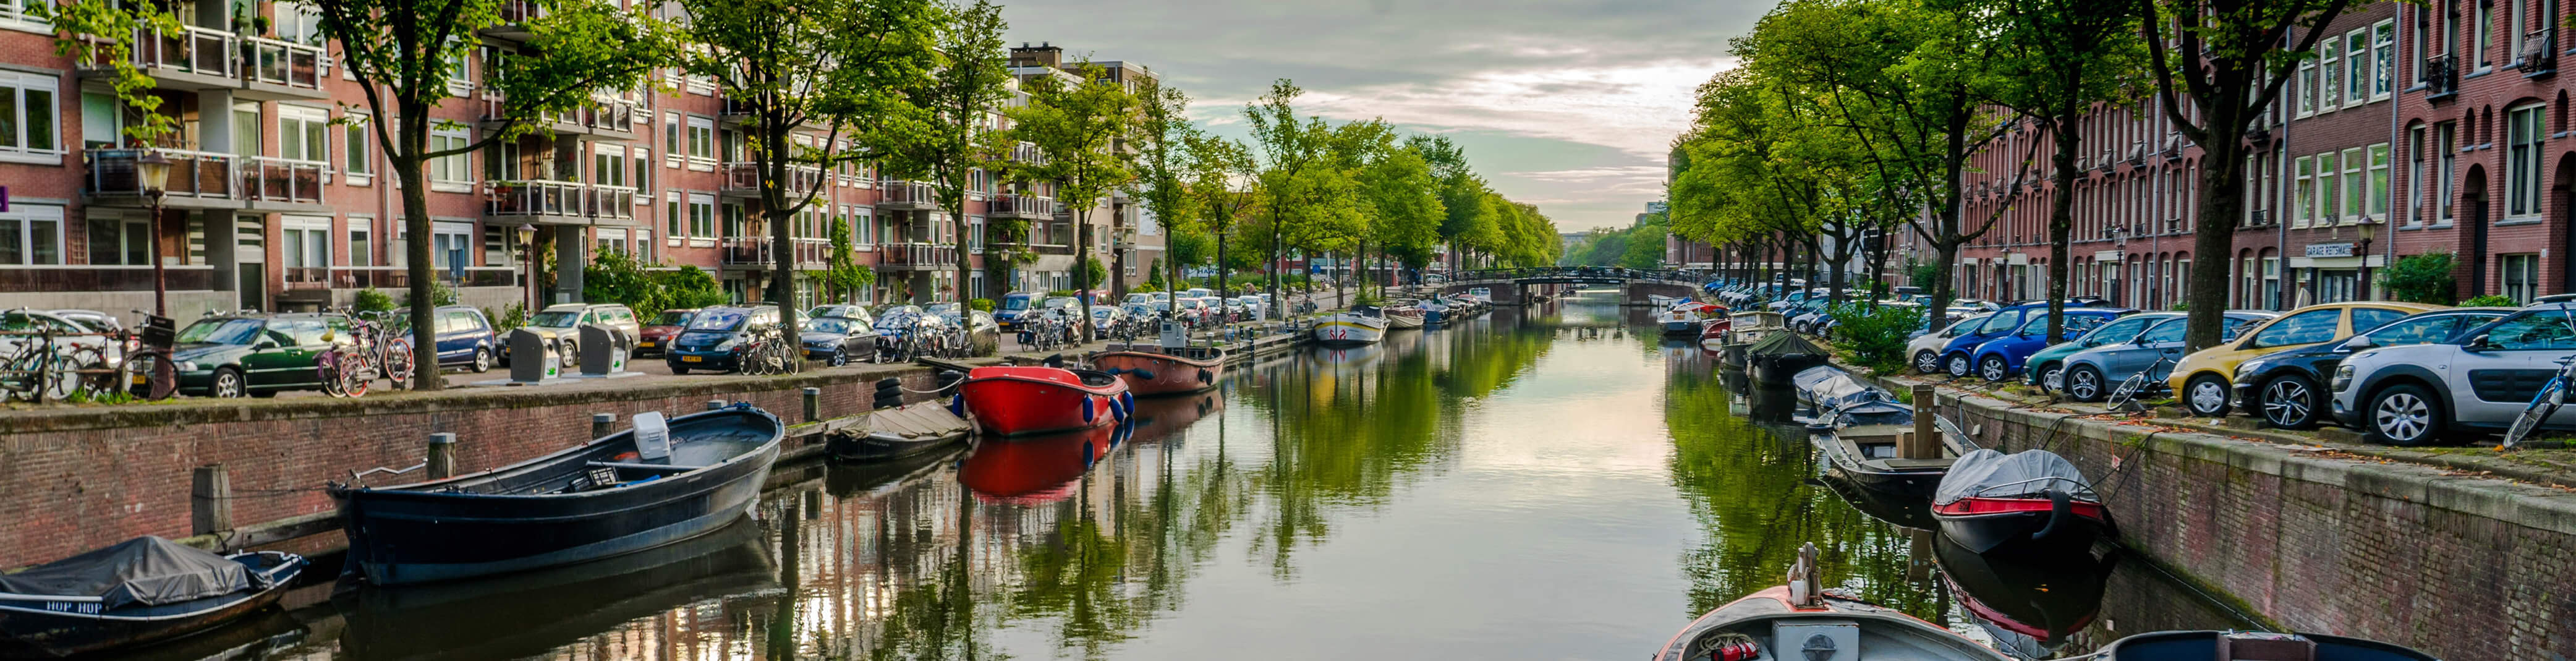 Online Training Courses In Amsterdam